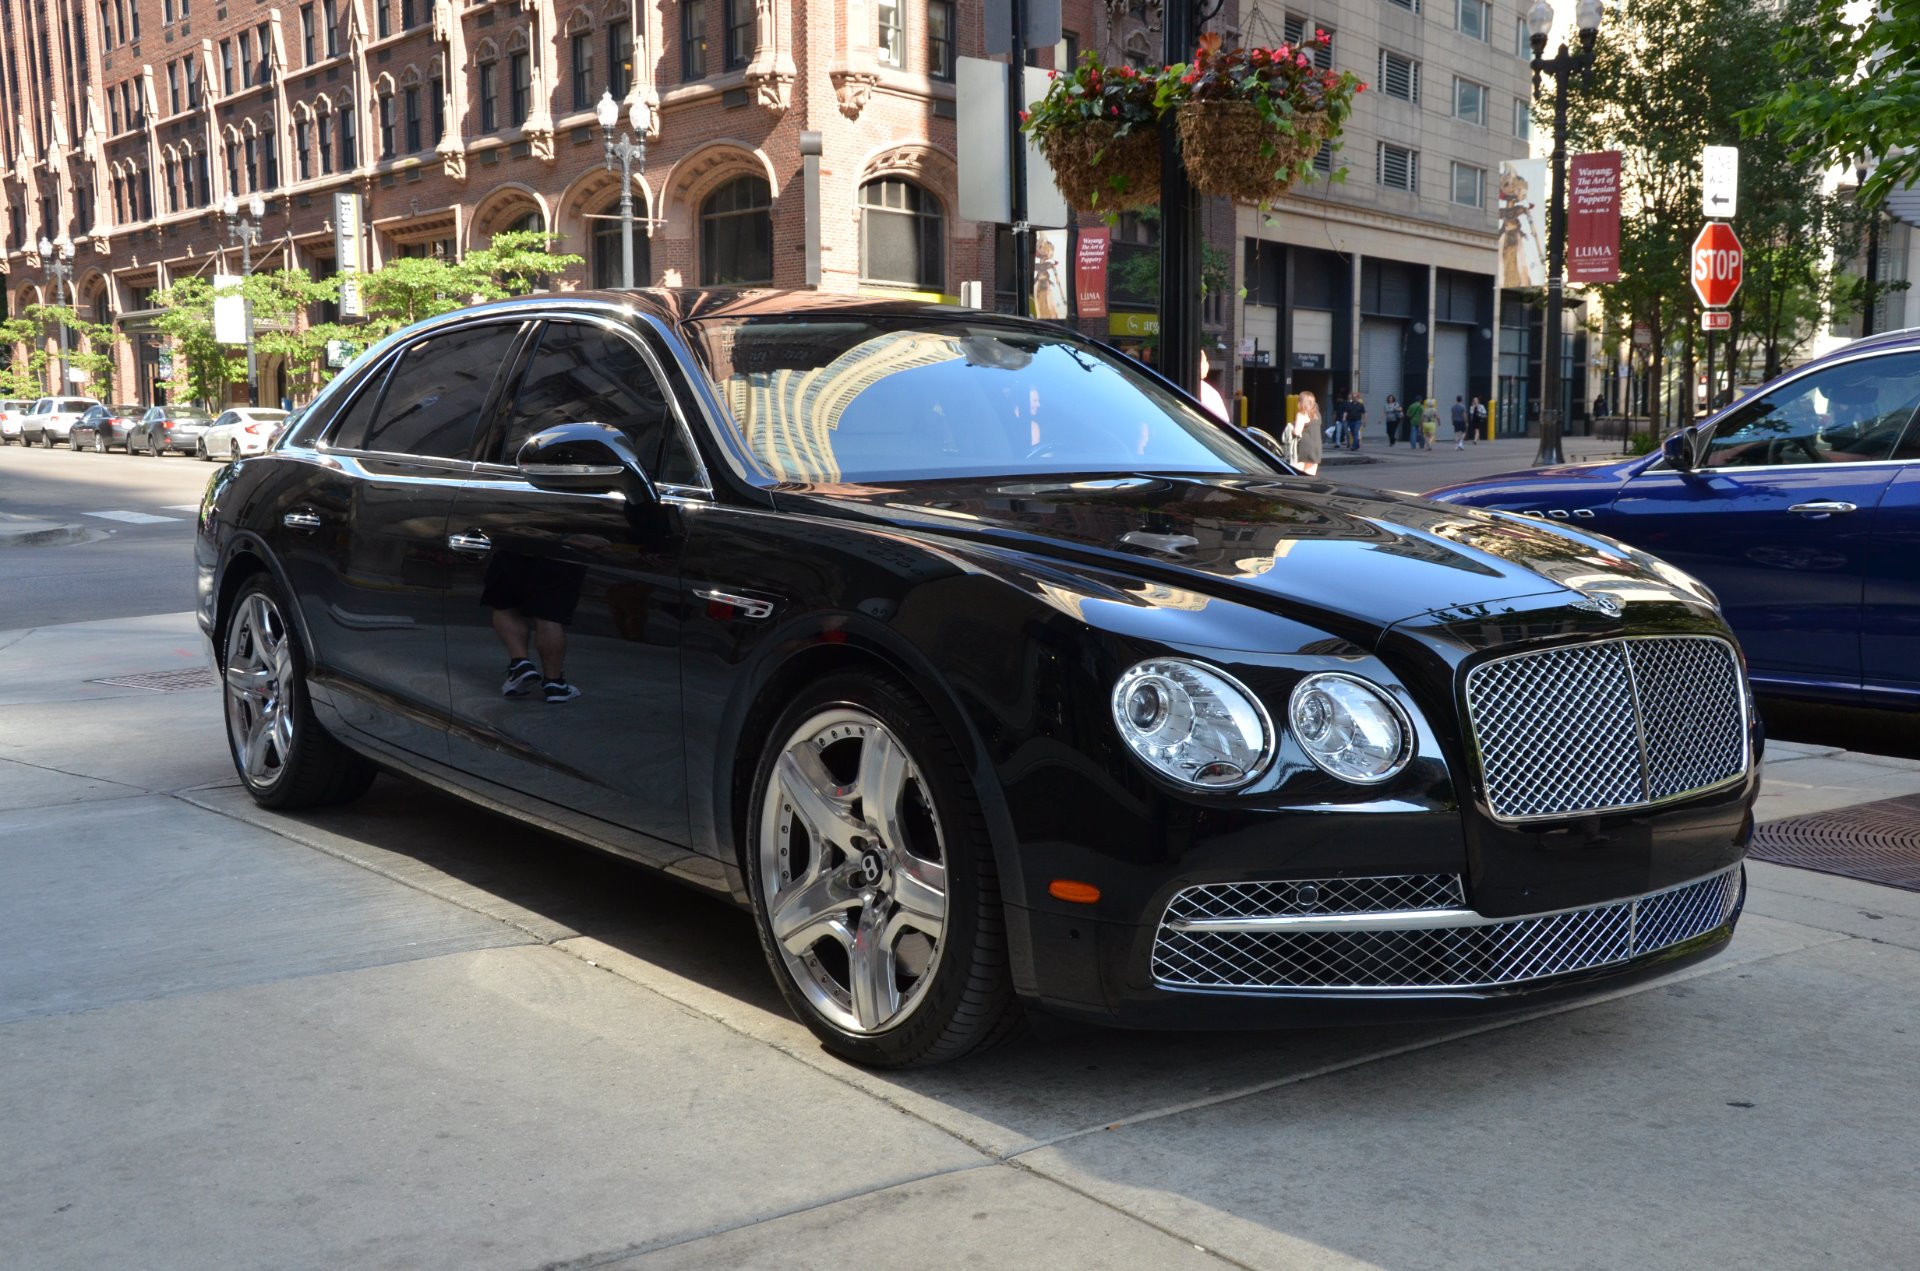 2014 bentley flying spur w12 stock # gc2122 for sale near chicago